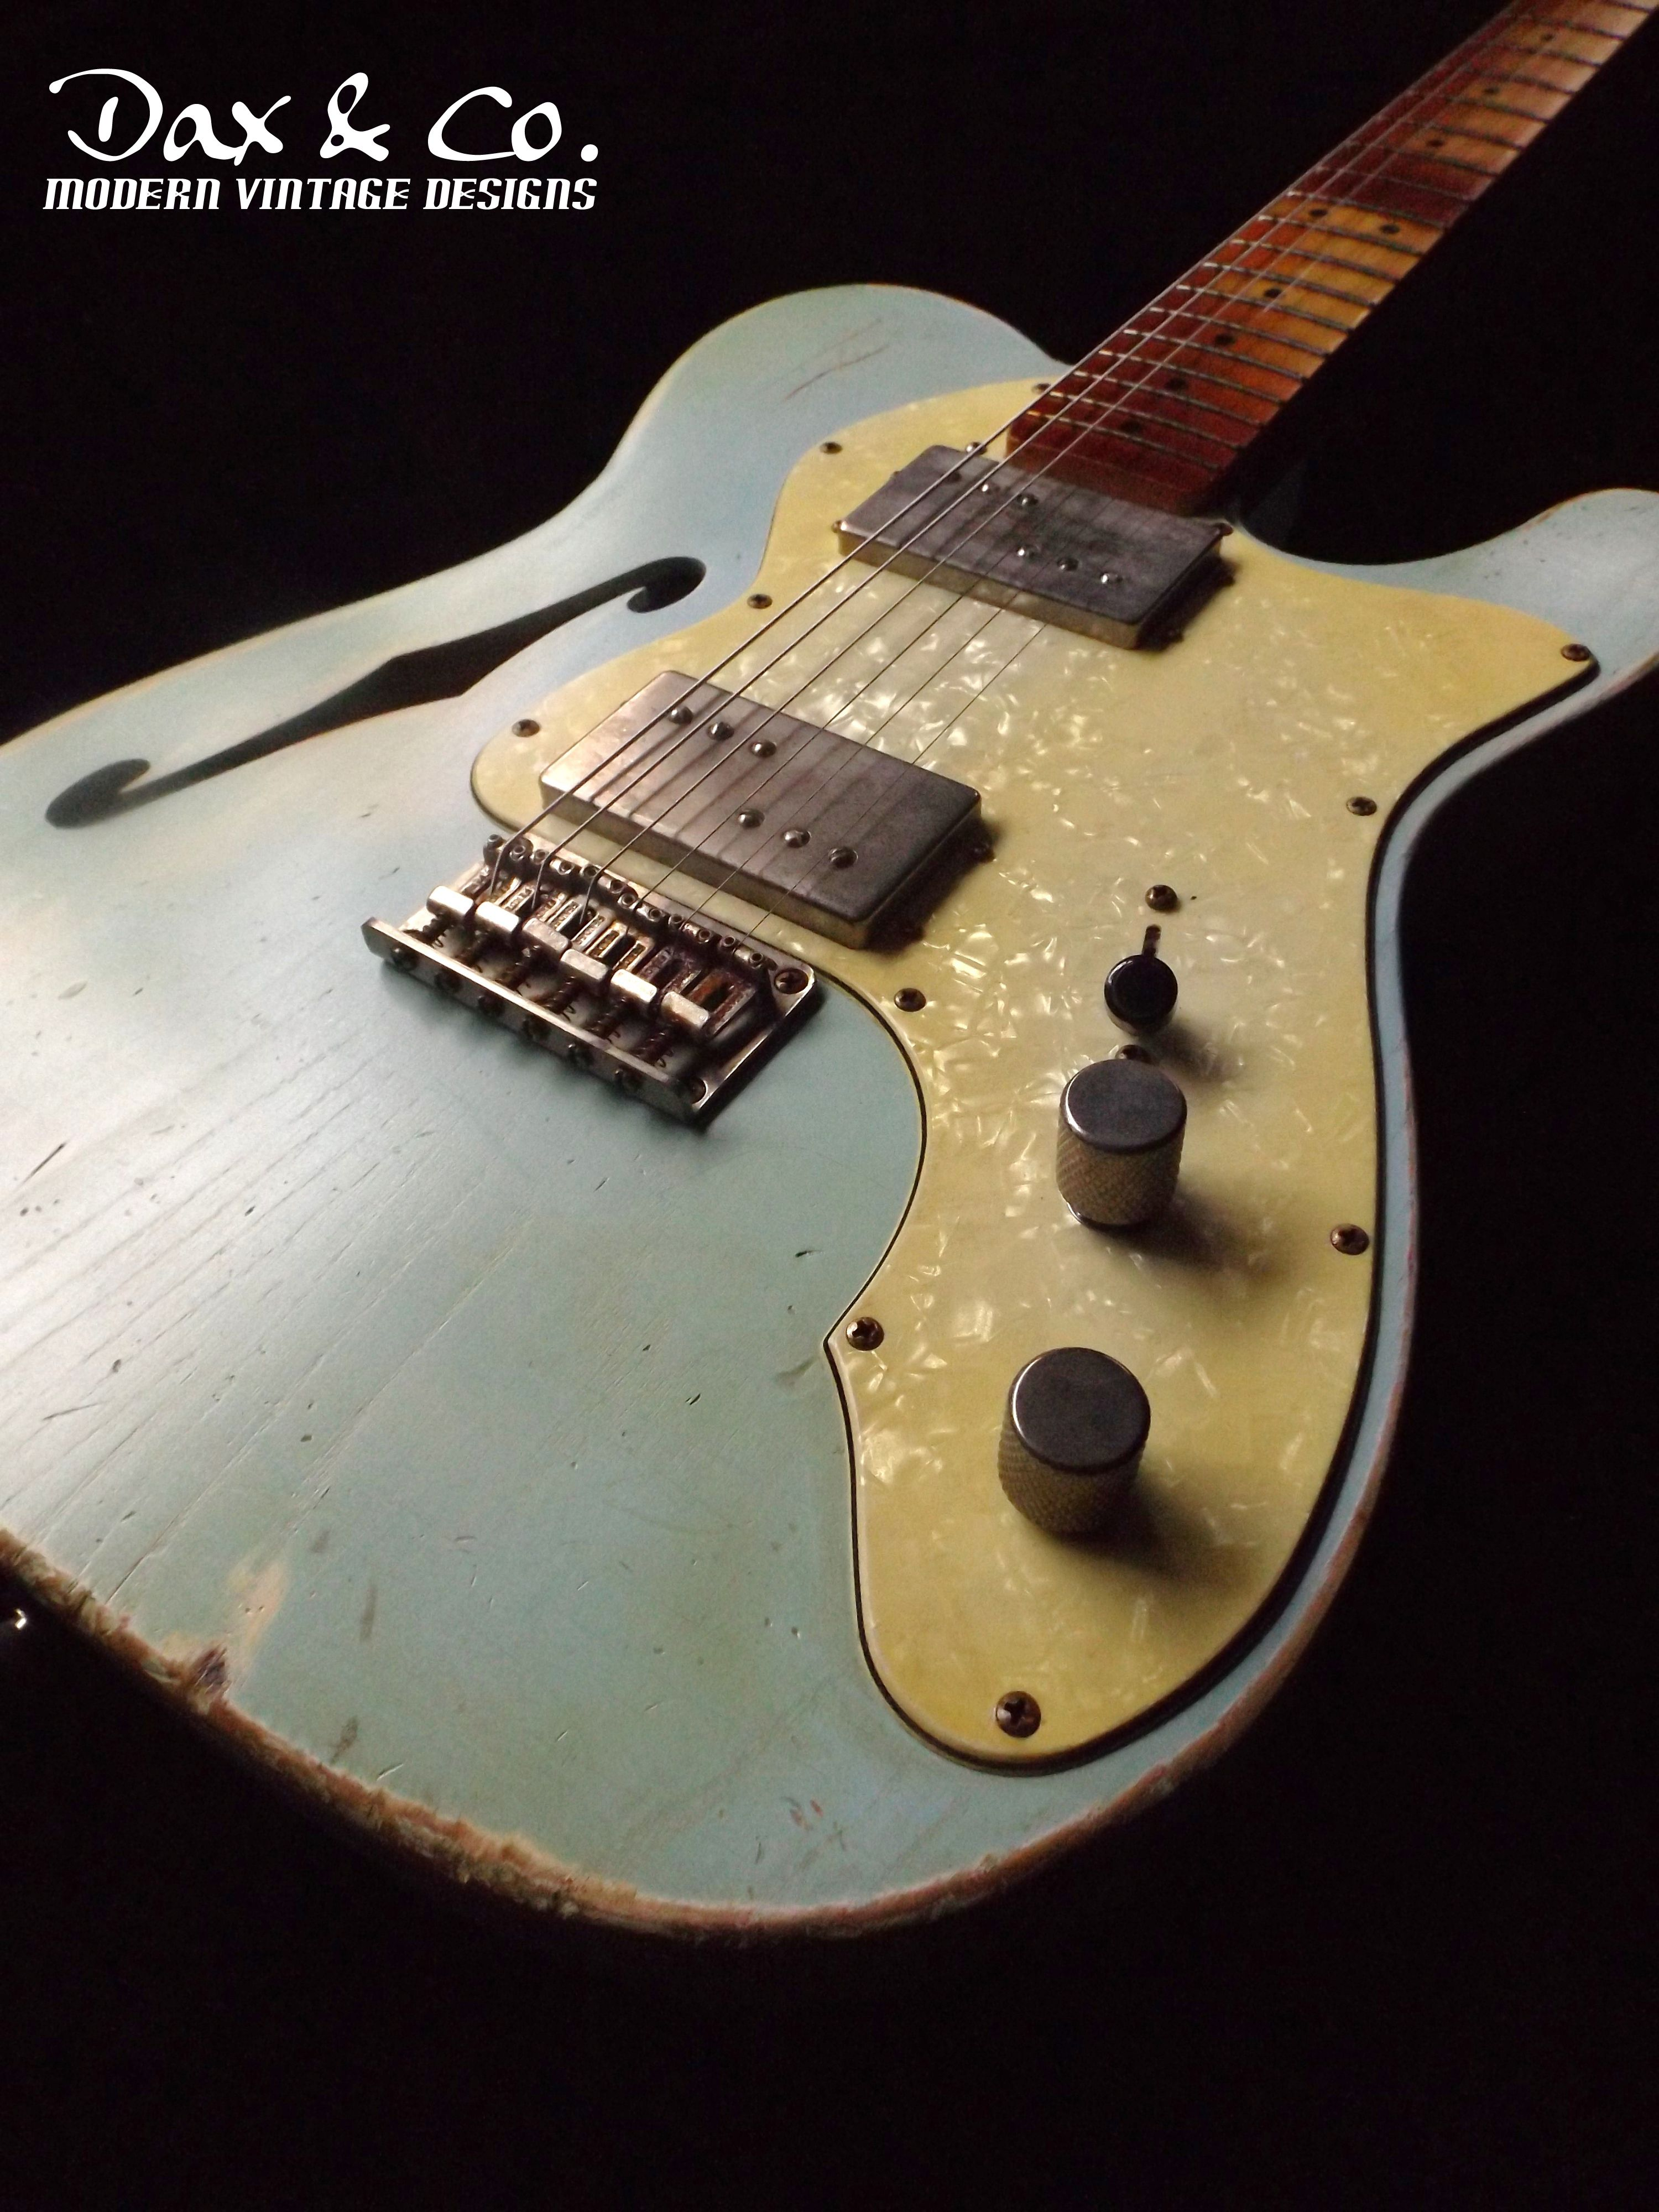 From the Dax&Co Custom Shop Fender Thinline Telecaster Relic